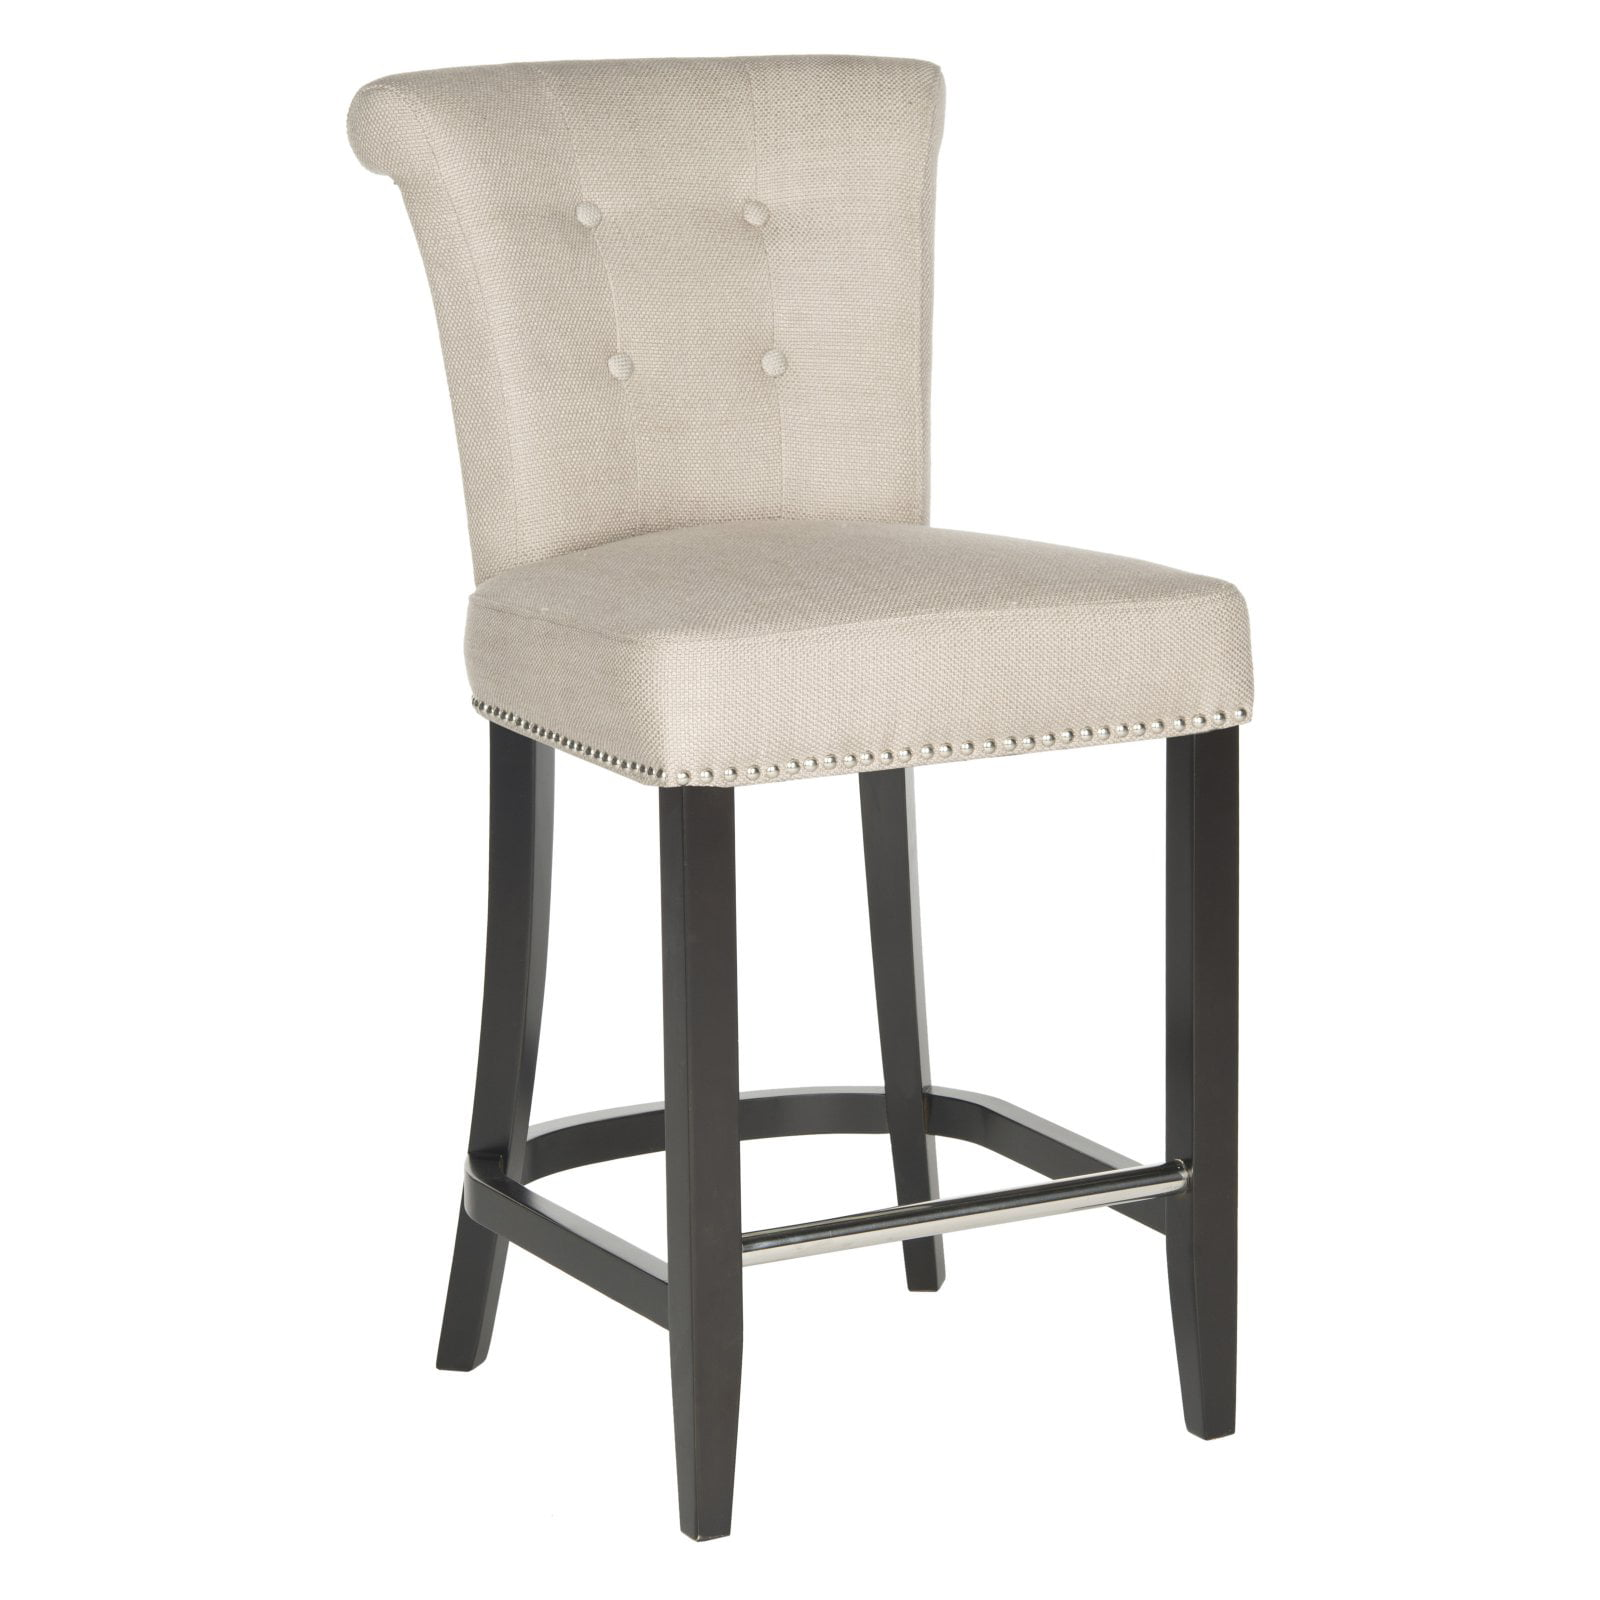 Safavieh Addo Classic Glam Ring Counter Stool With